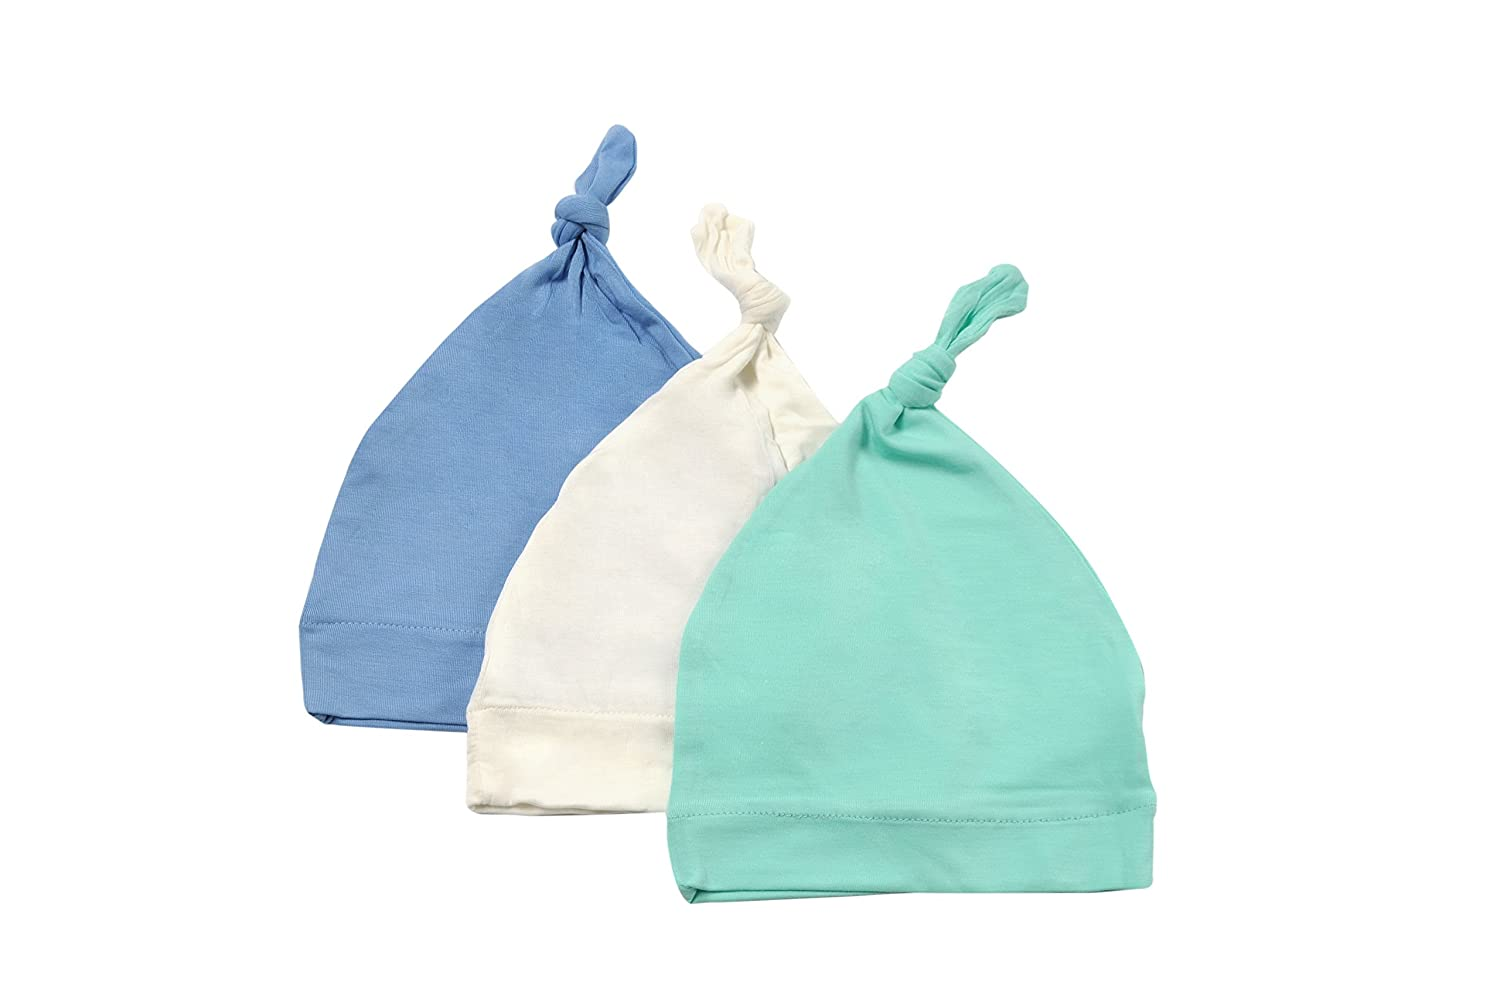 KYTE BABY Organic Bamboo Baby Beanie Hats - Super Soft Knotted Caps Available in Pattern and Solid Colors - 3 Pack (Newborn, Storm/Cloud/Mauve)